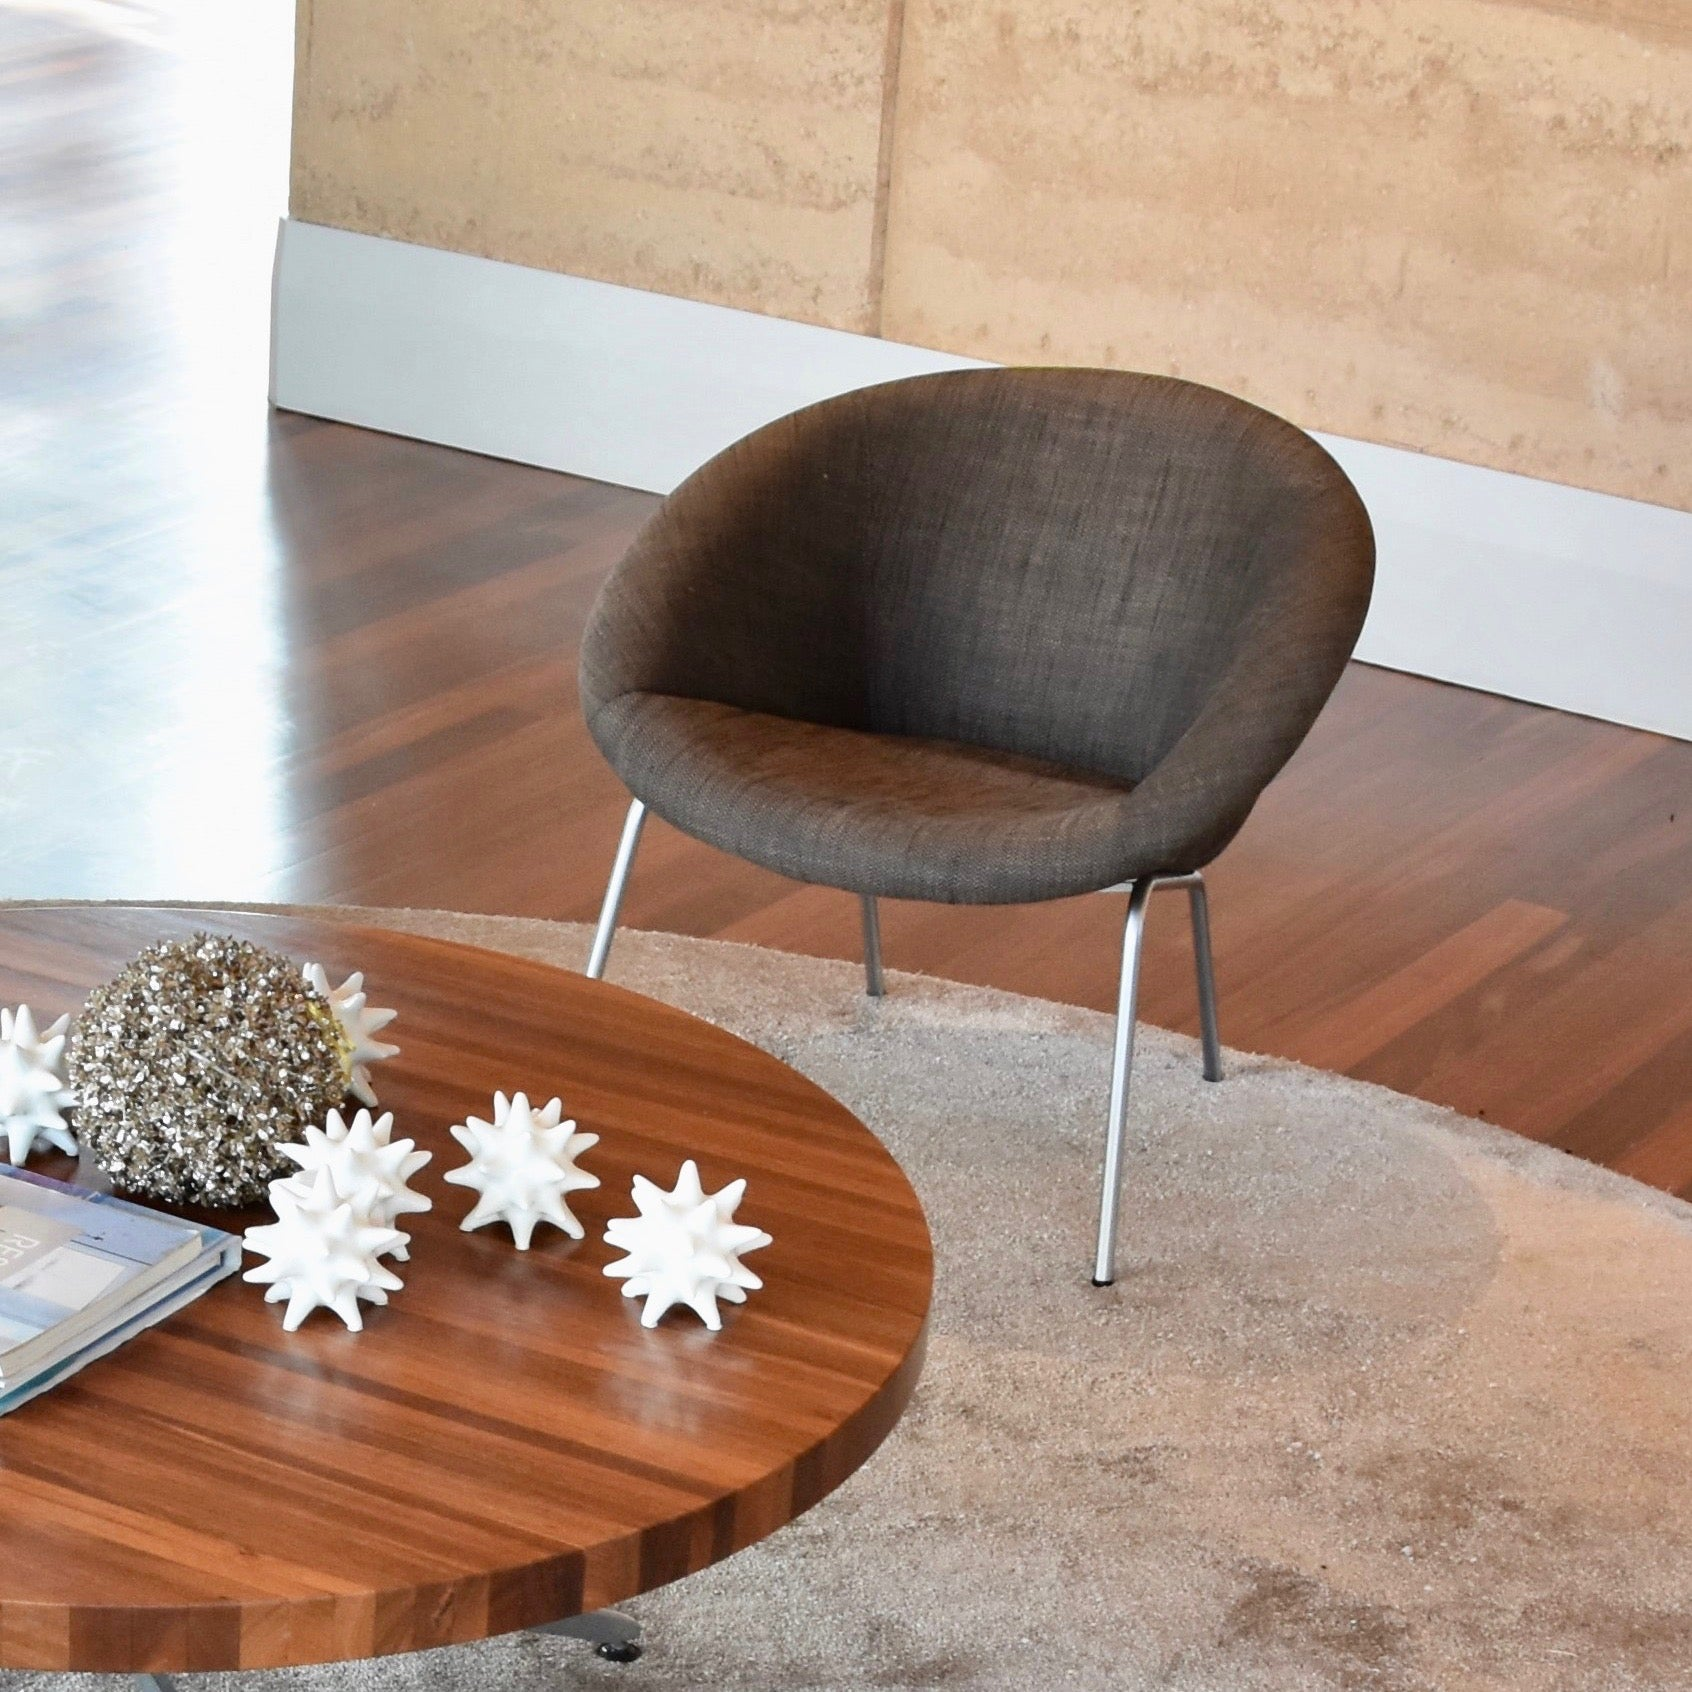 369 Chair by Walter Knoll (4 available)